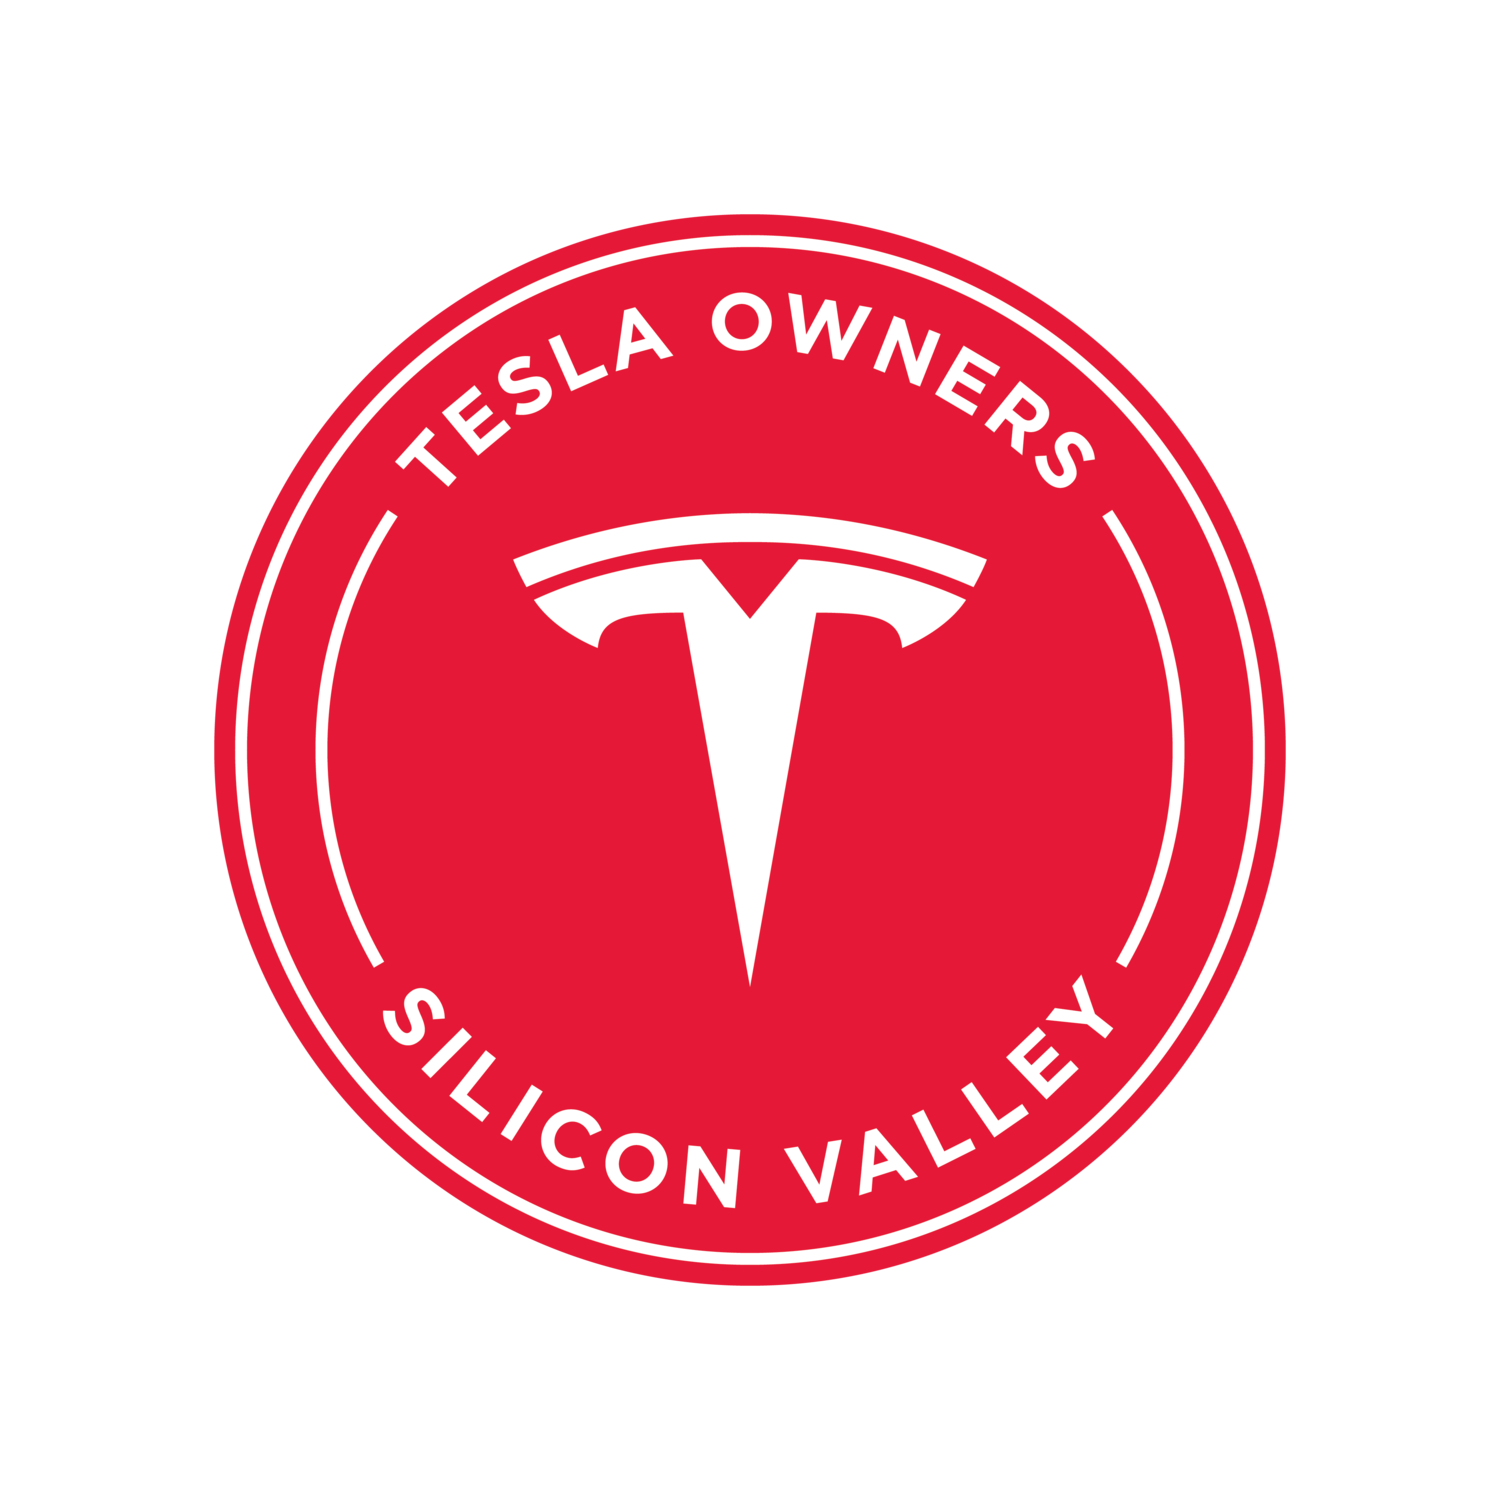 Tesla Owners of Silicon Valley